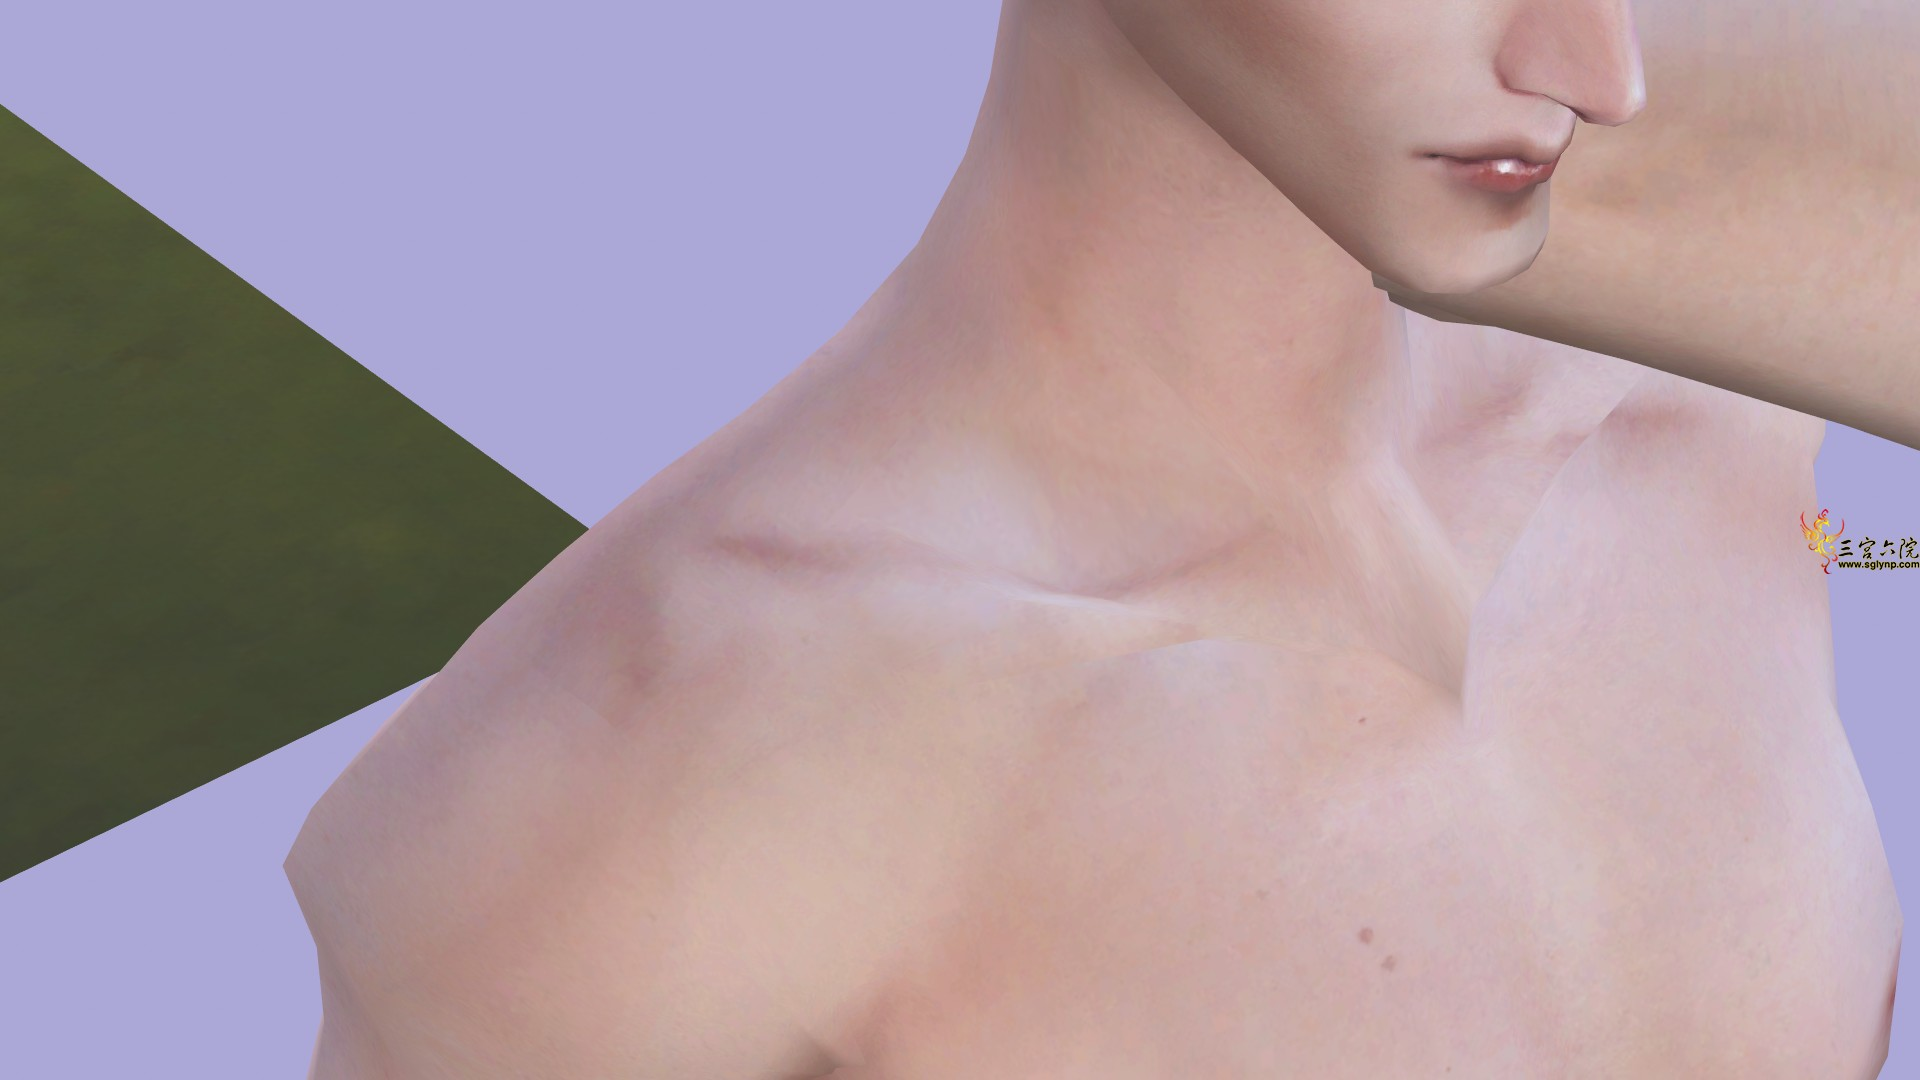 The Sims 4 2020_9_22 下午 08_43_39.png